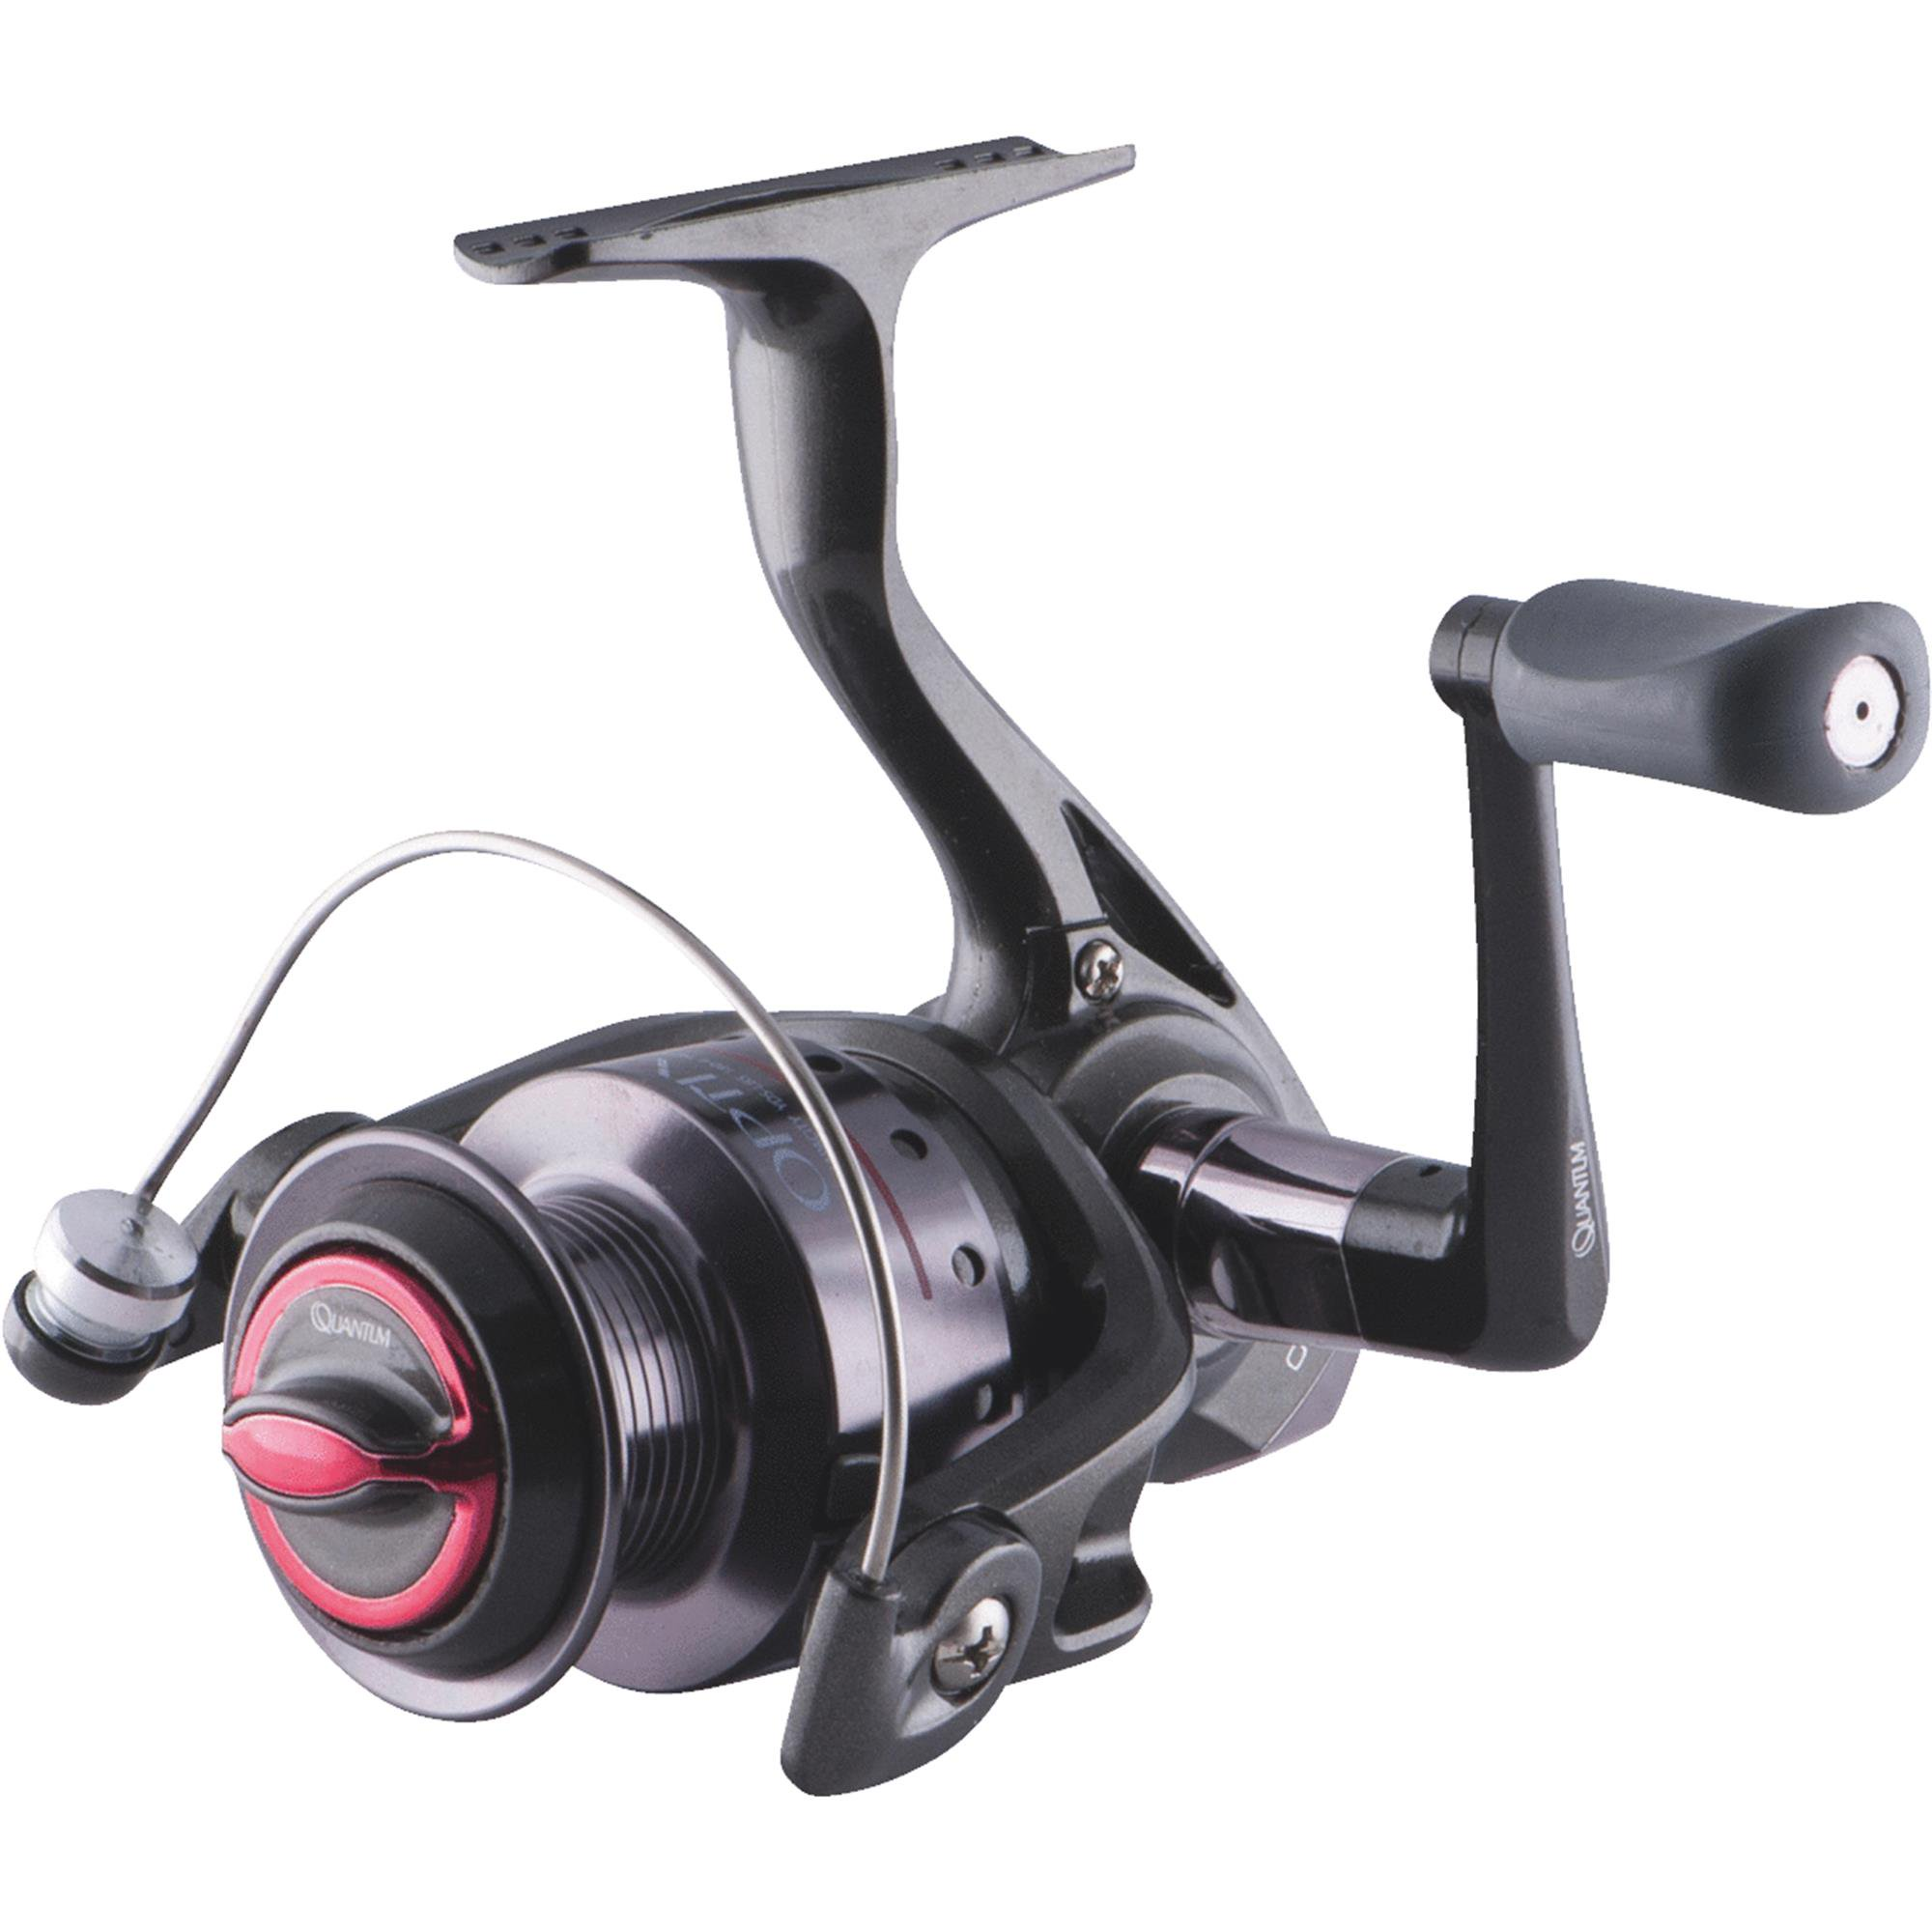 Quantum Optix Size 20 Size Spinning Reel